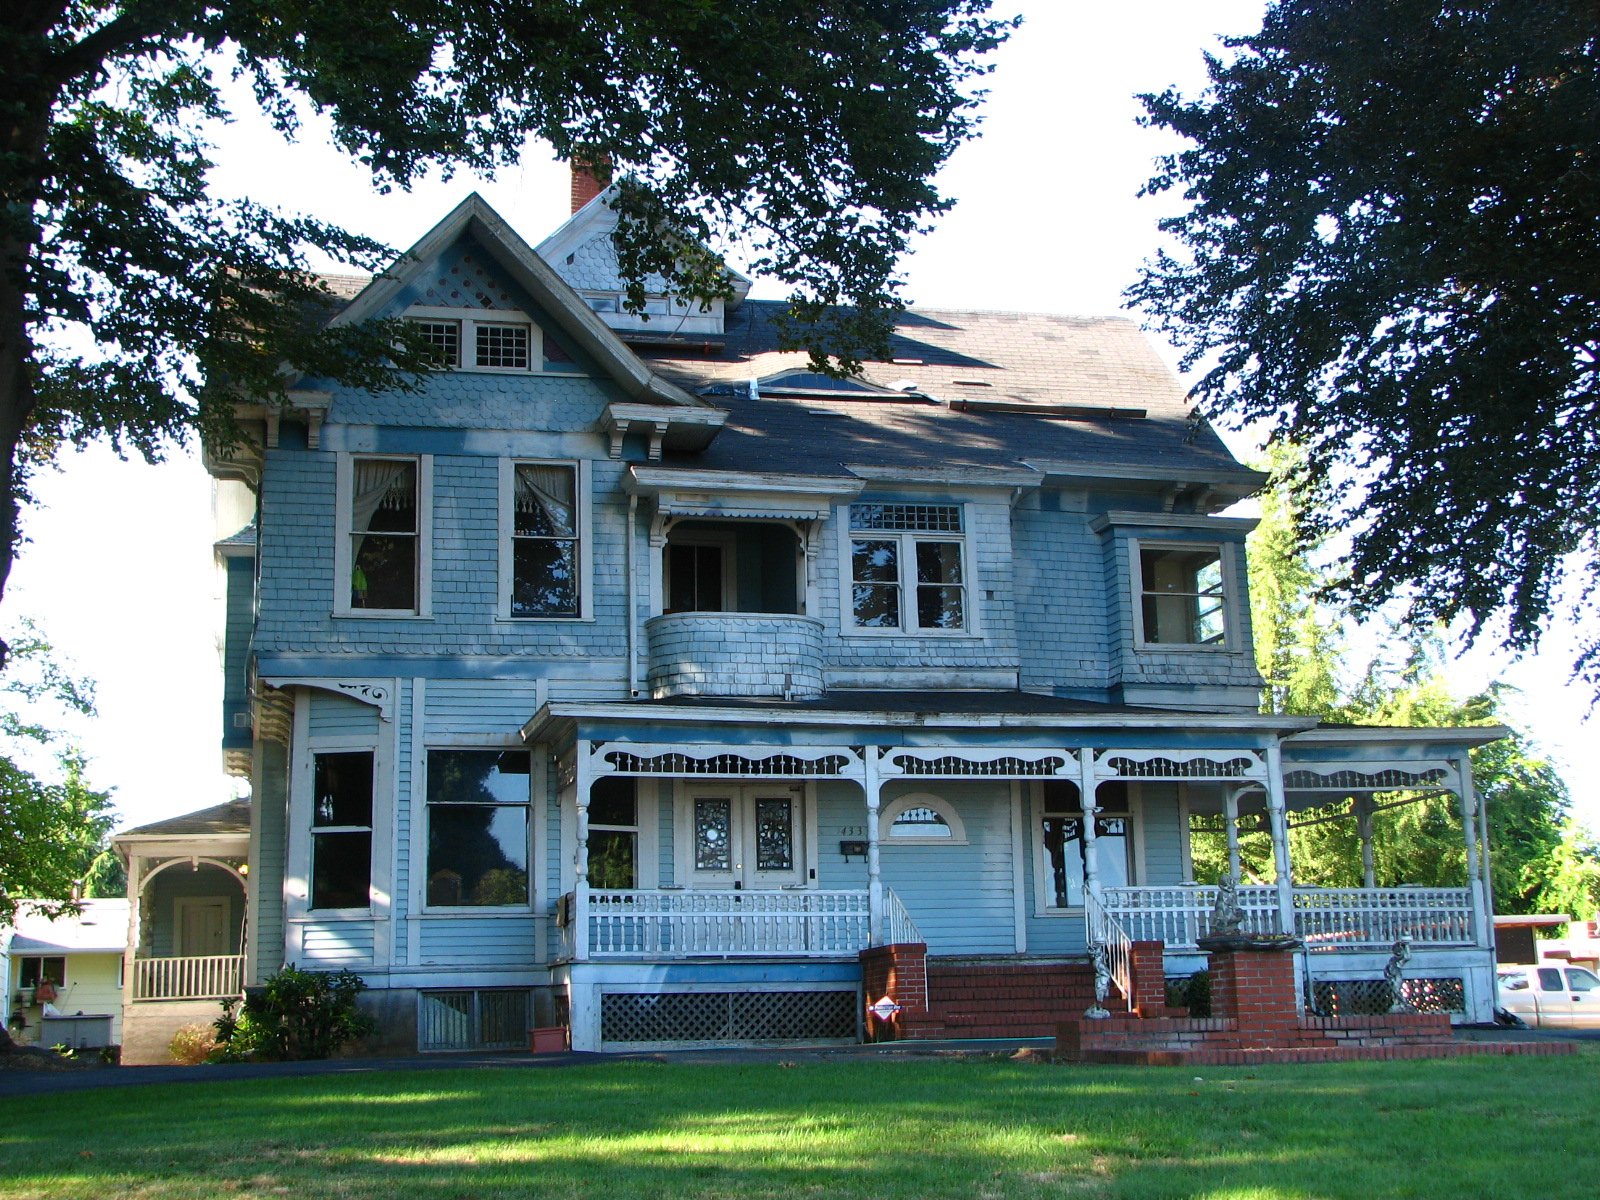 File mock house portland wikimedia commons for Building a home in oregon